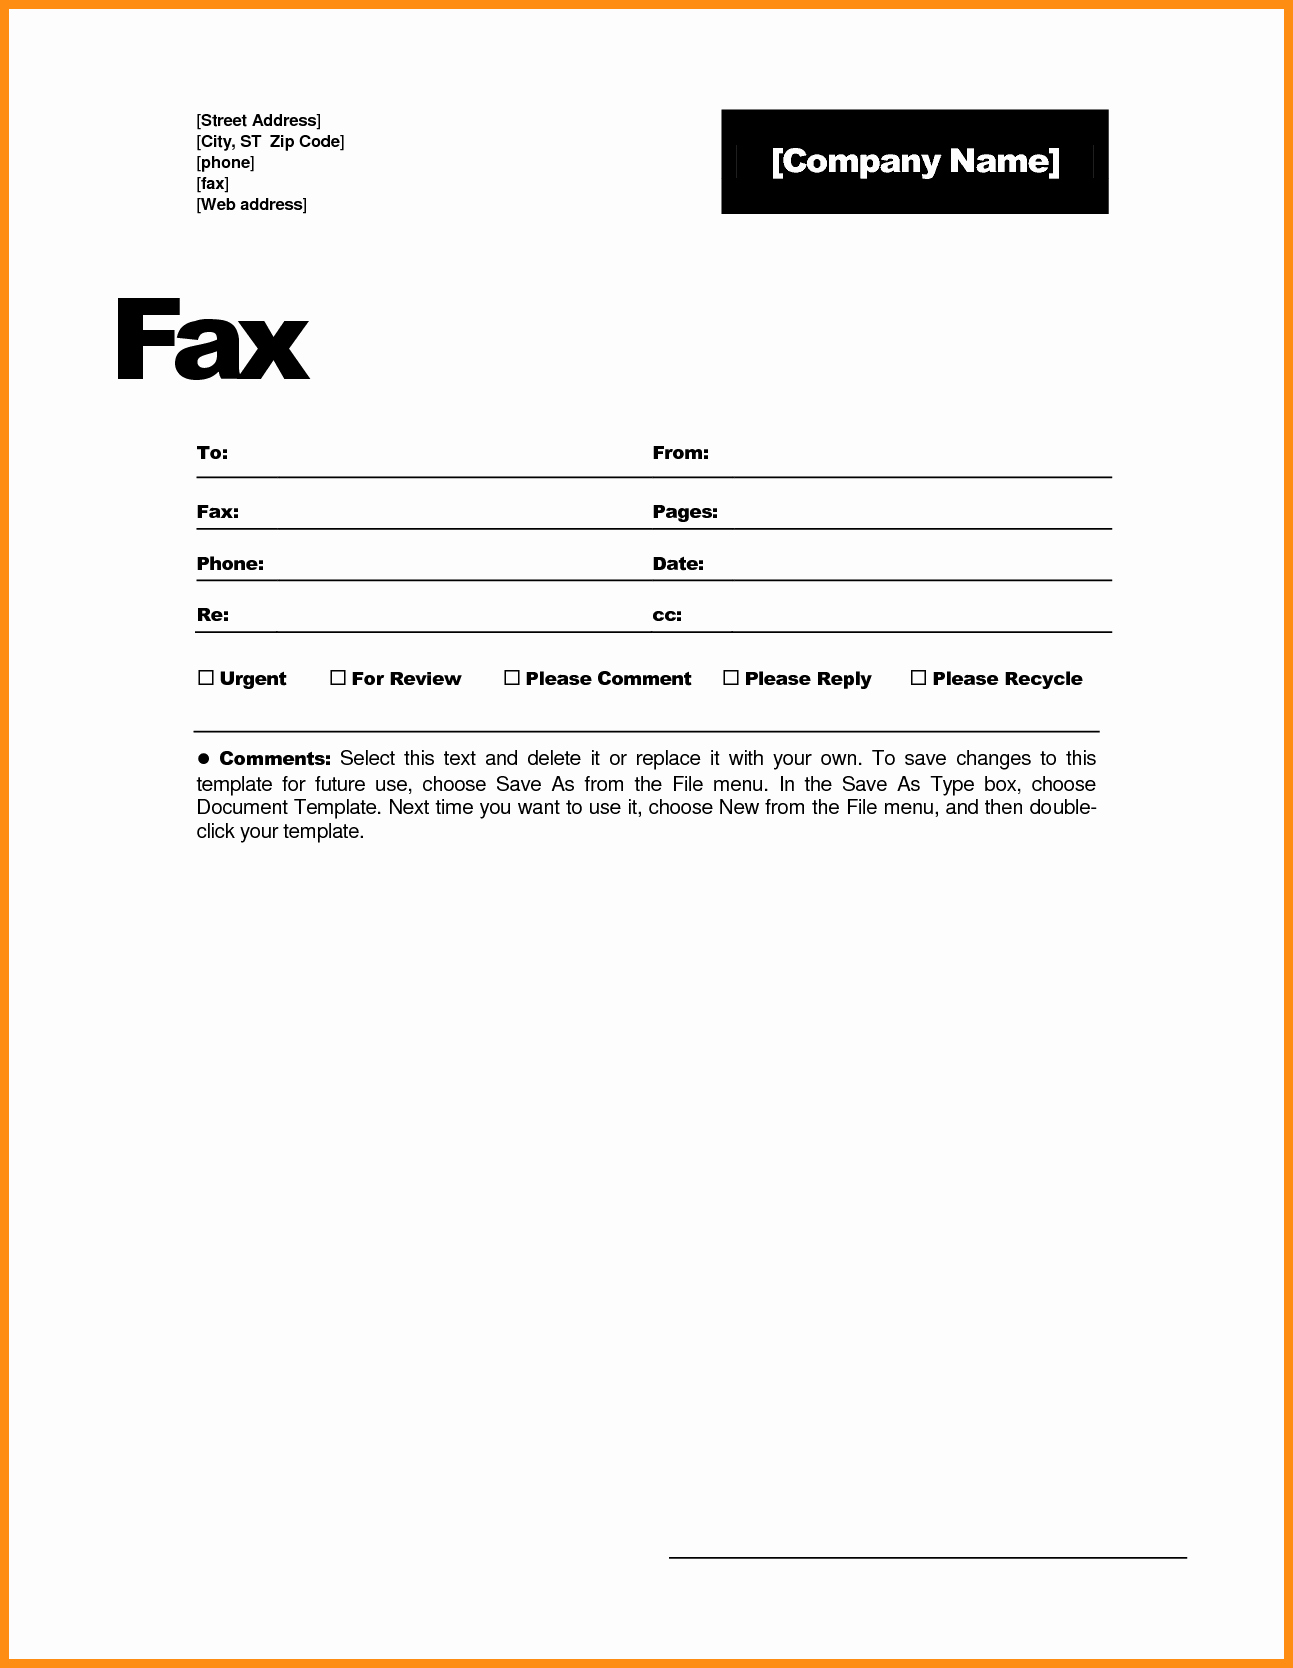 Fax Cover Sheet Download Free Beautiful 6 Free Fax Cover Sheet Template Word